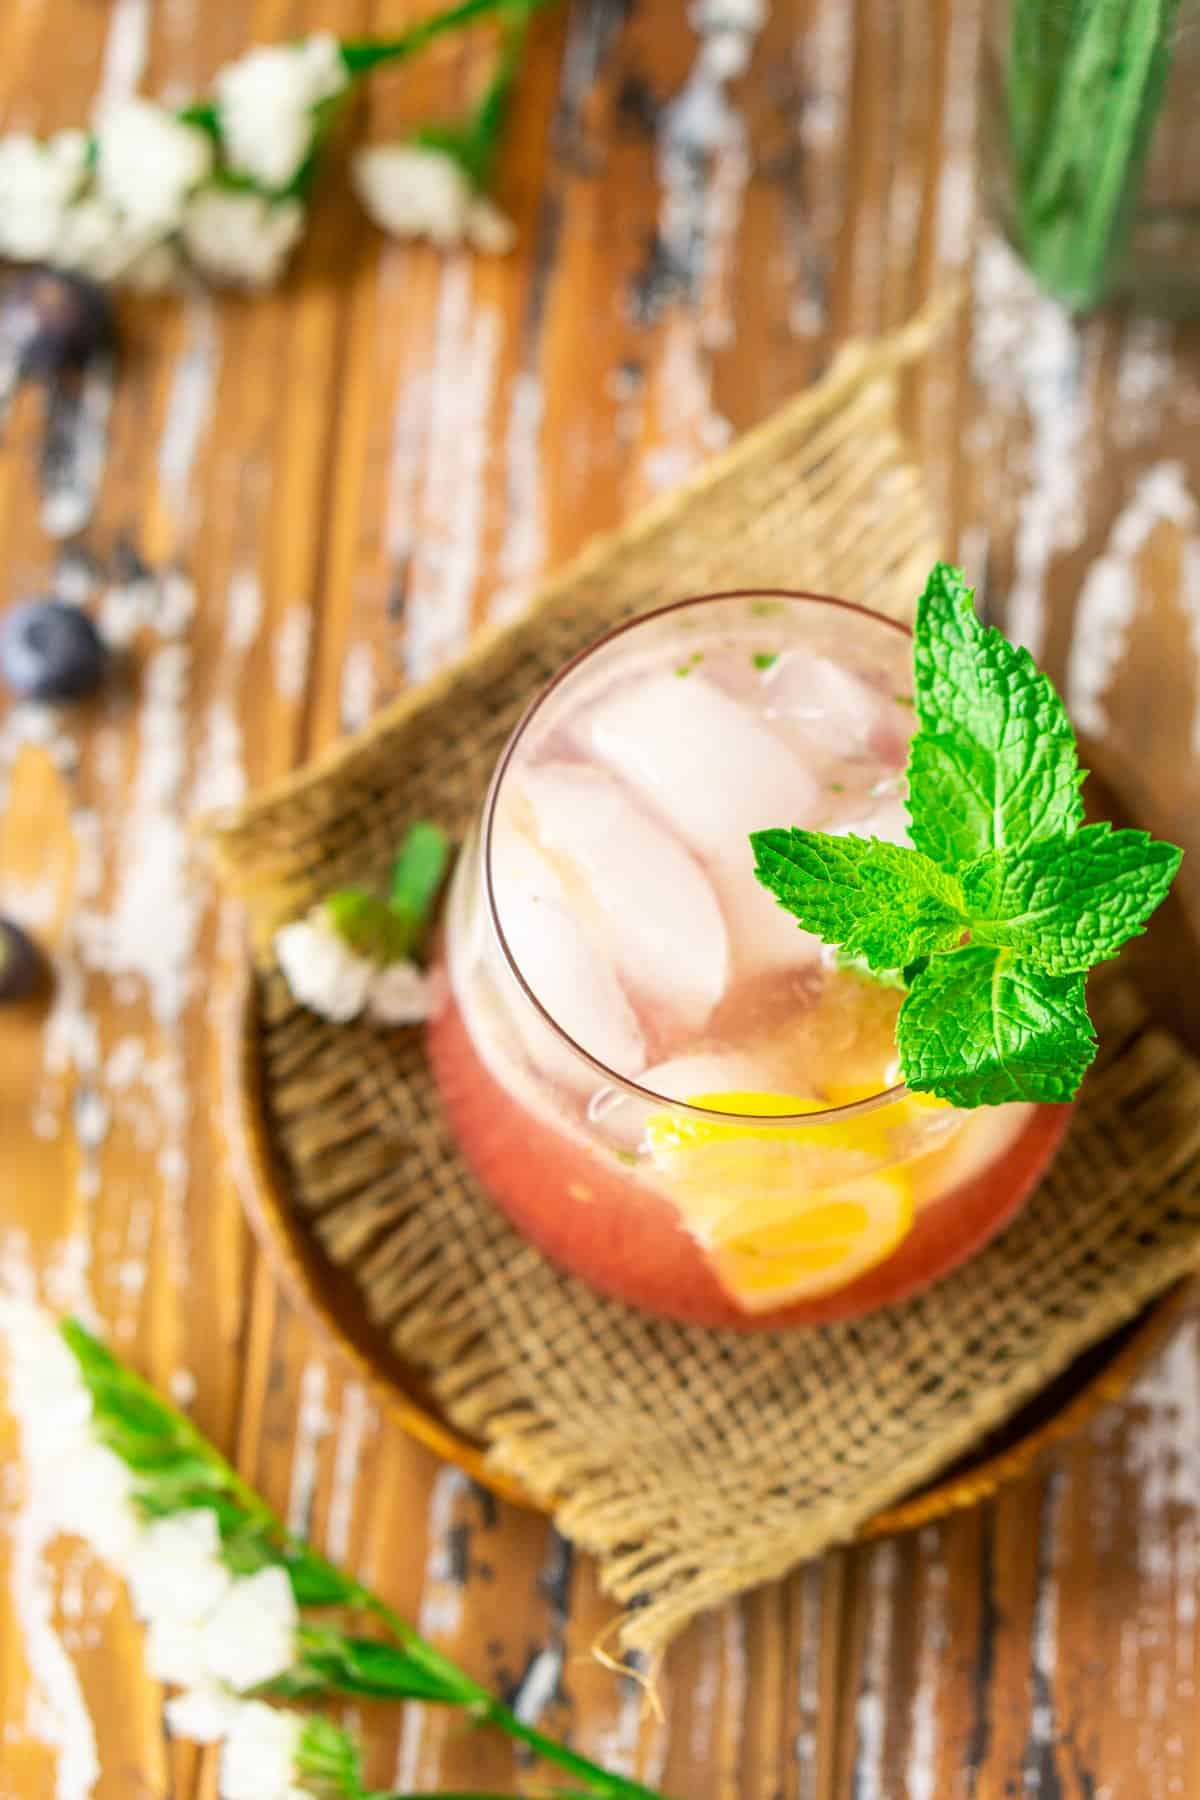 An aerial view of the blueberry bourbon smash with a sprig of mint on a wooden plate.